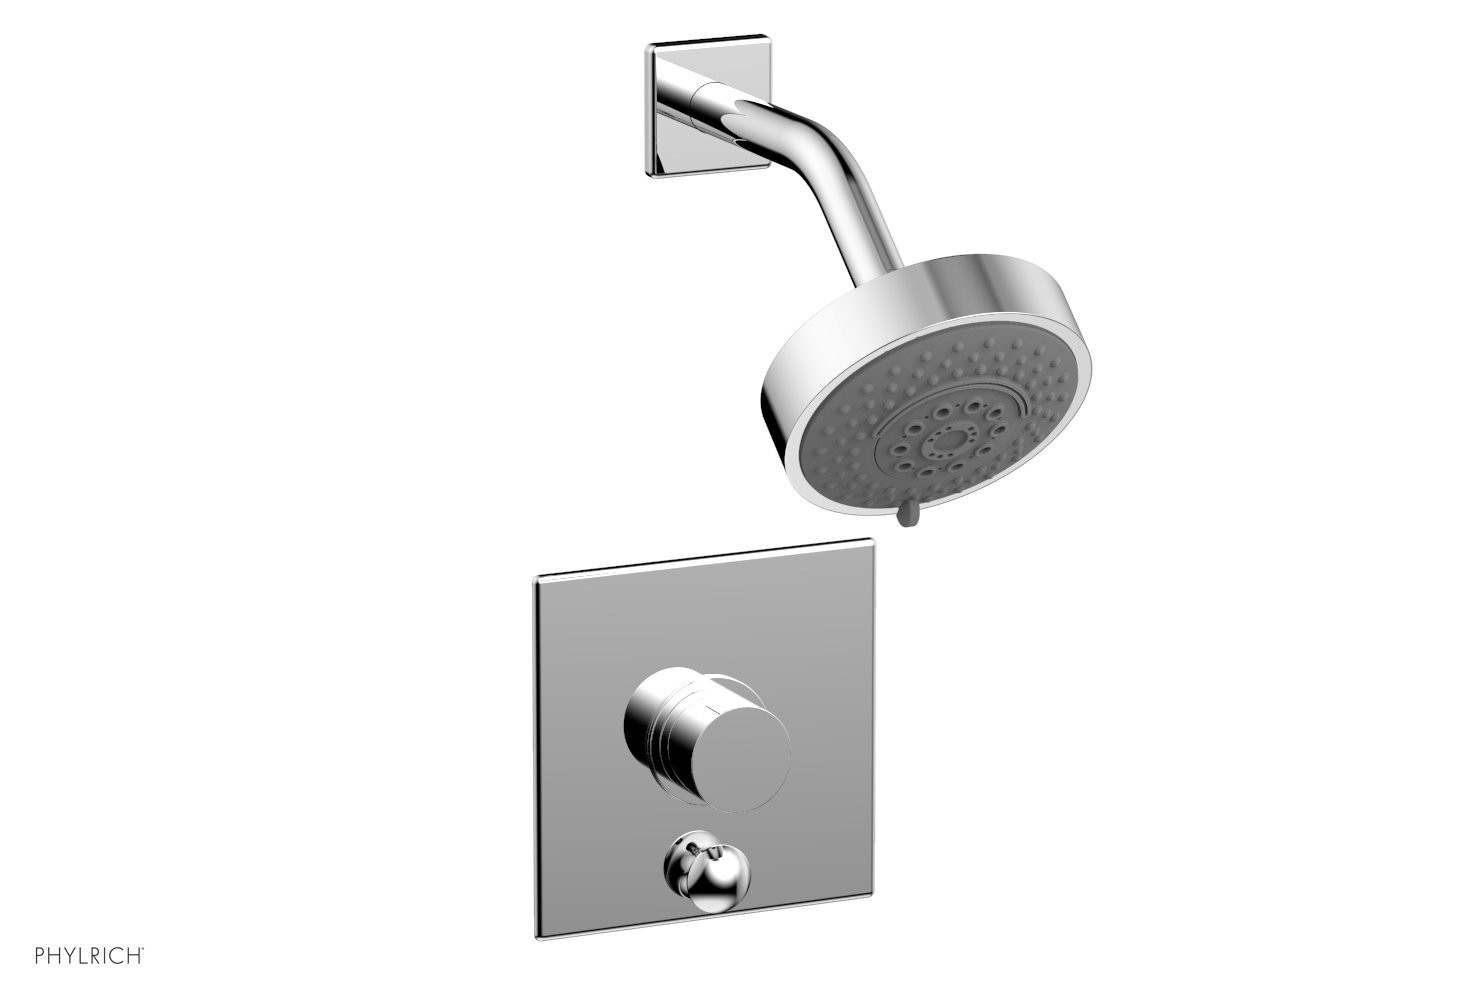 PHYLRICH 4-193 BASIC II WALL MOUNT PRESSURE BALANCE SHOWER AND DIVERTER SET WITH SMOOTH HANDLE